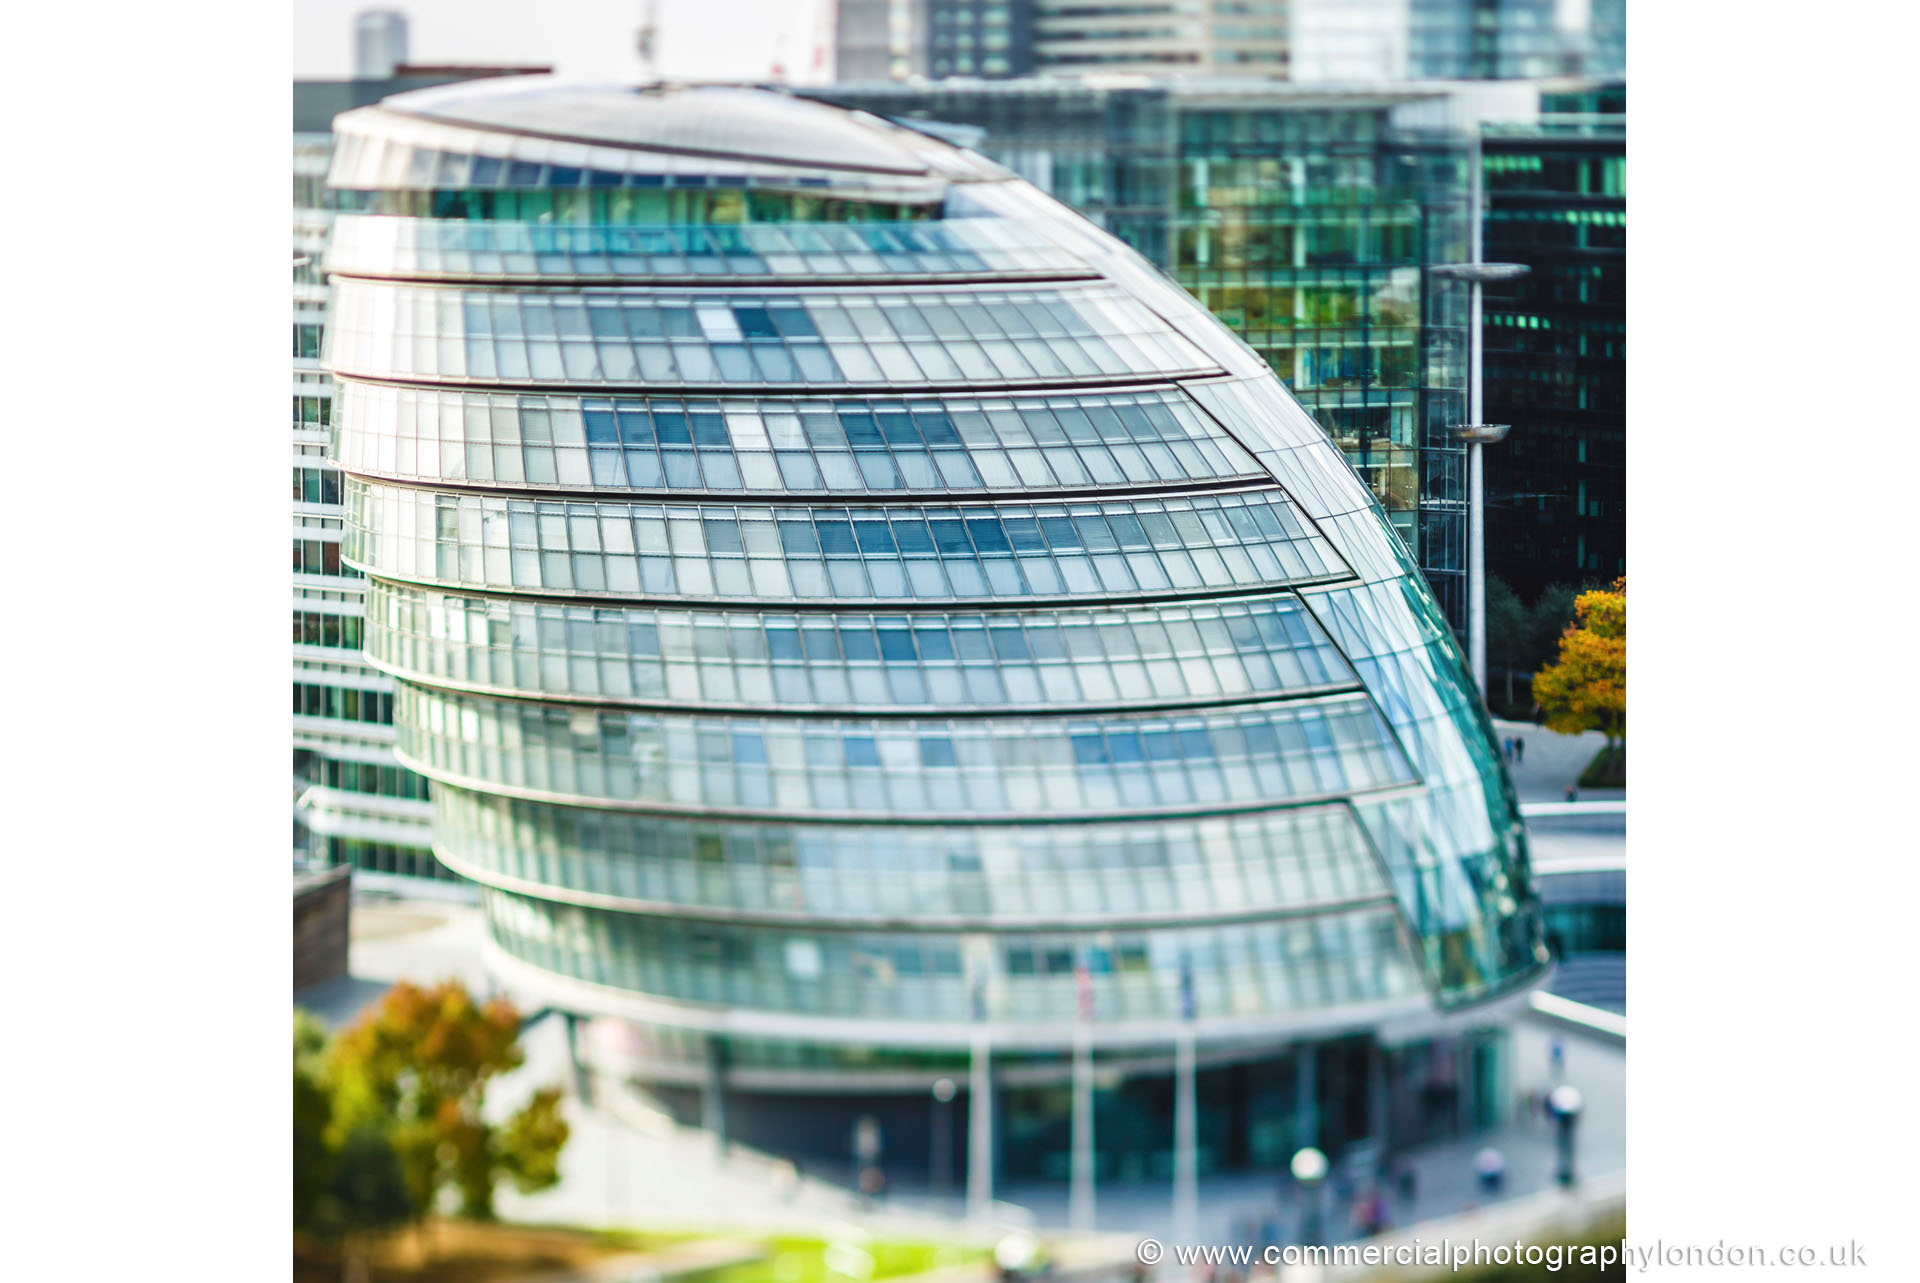 Architectural Photographer London portfolio photograph 14 - Commercial Photography London